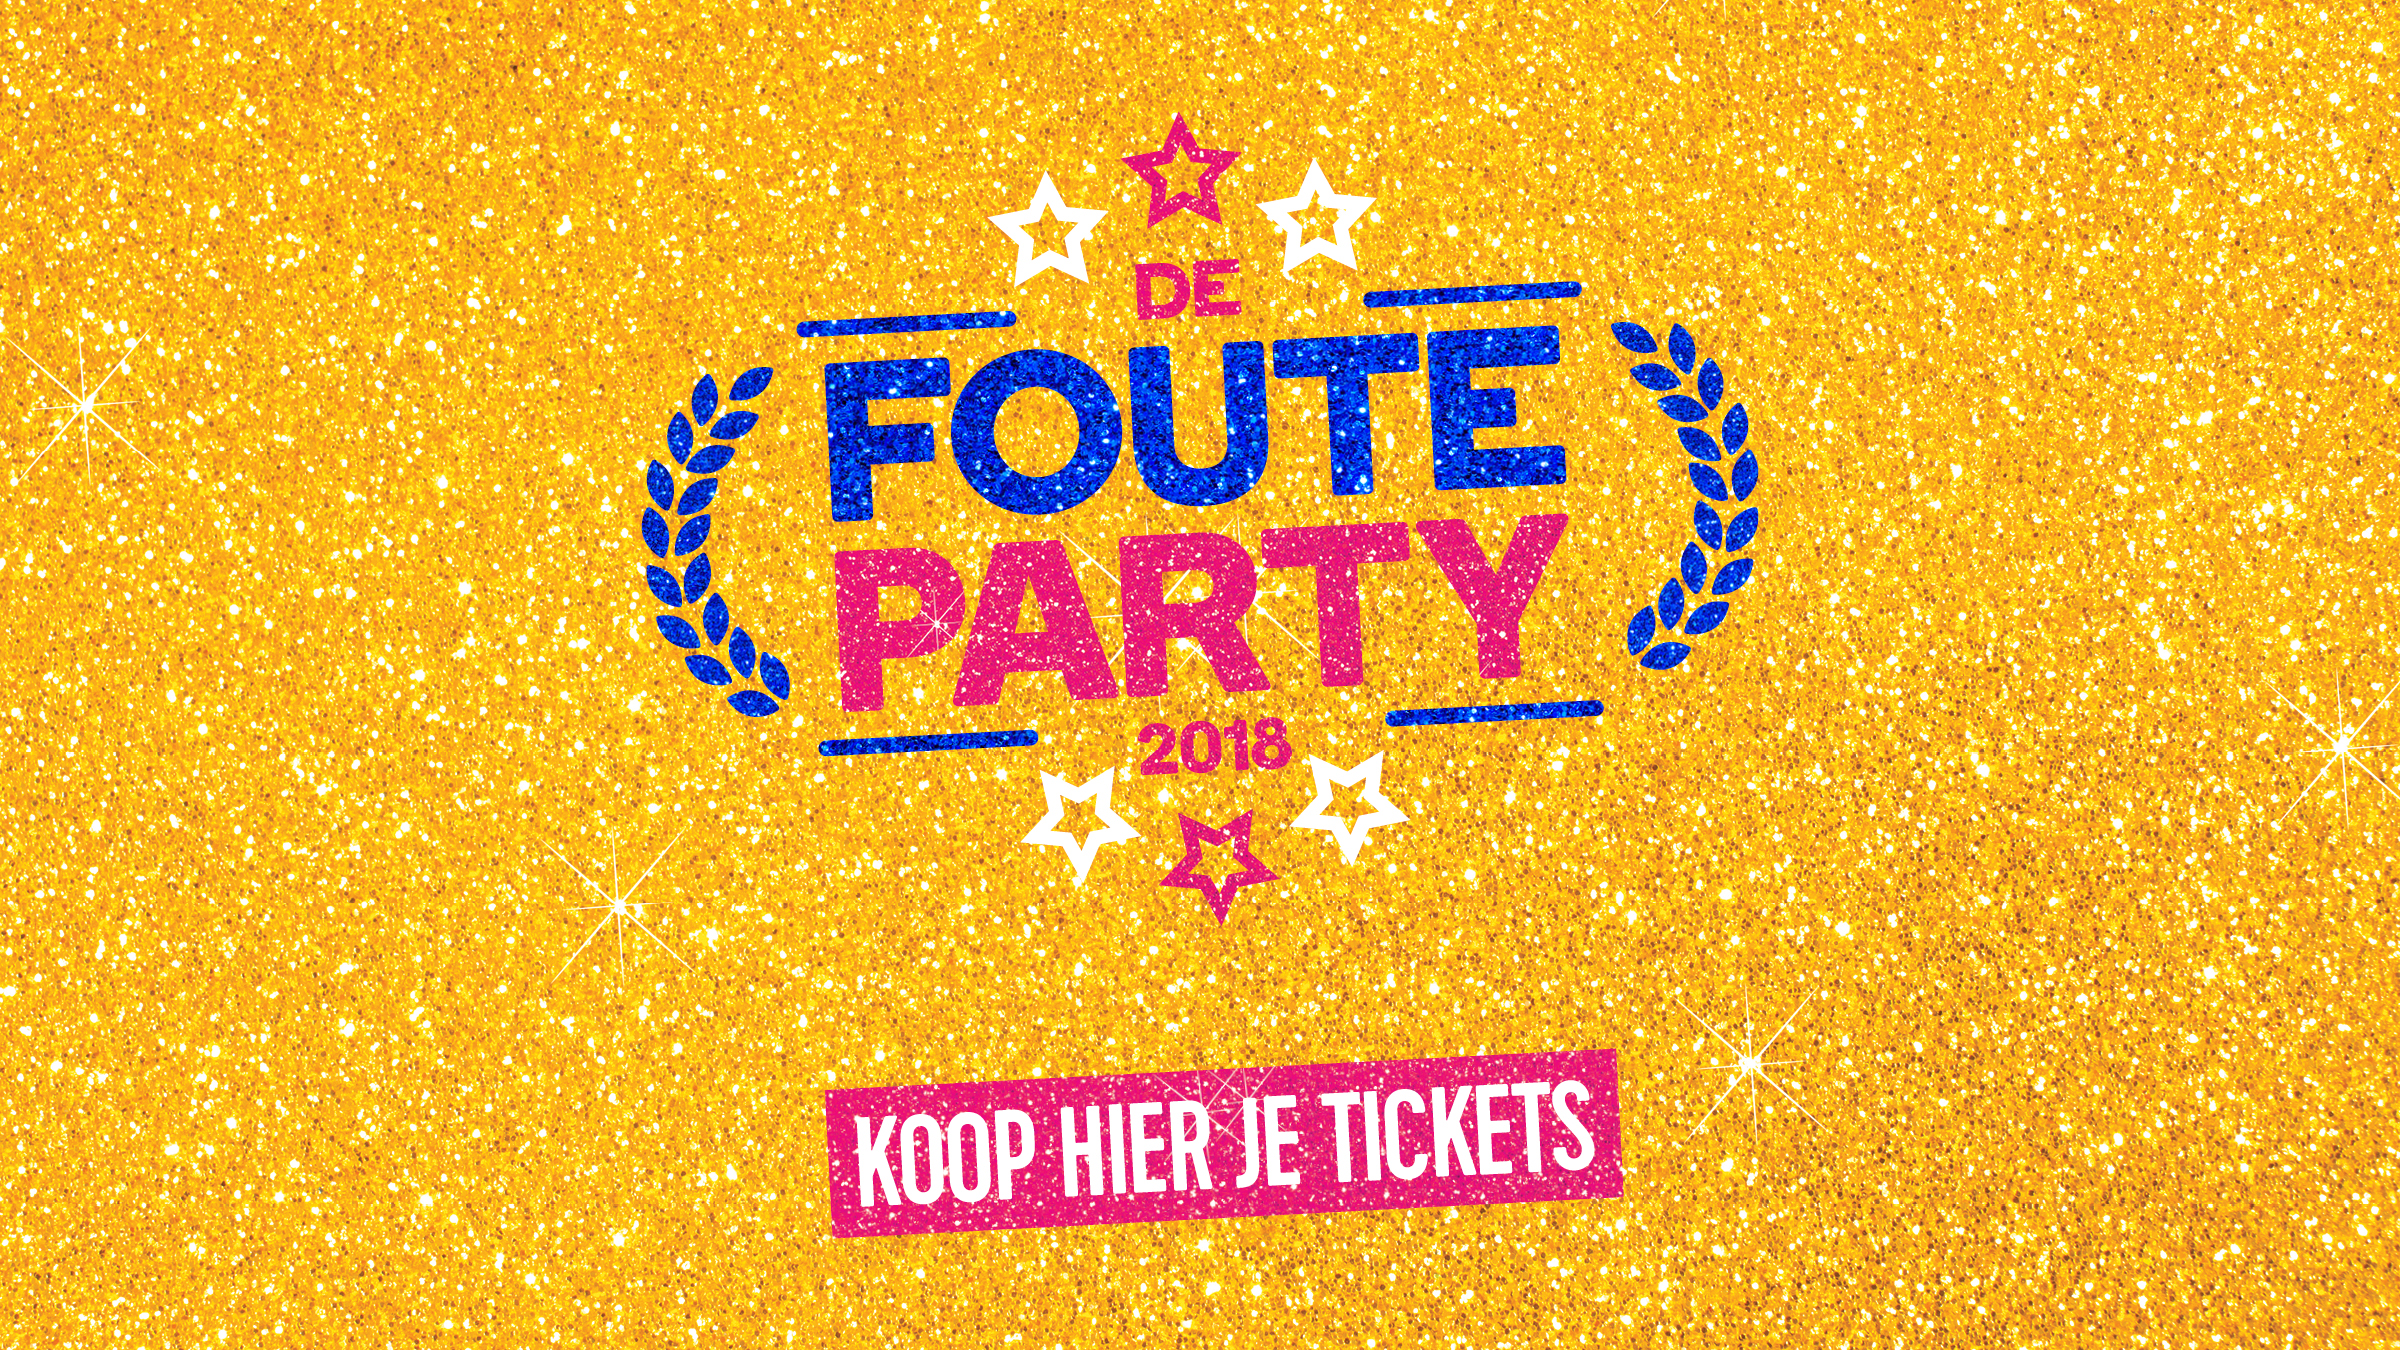 Foute party 2400x1350